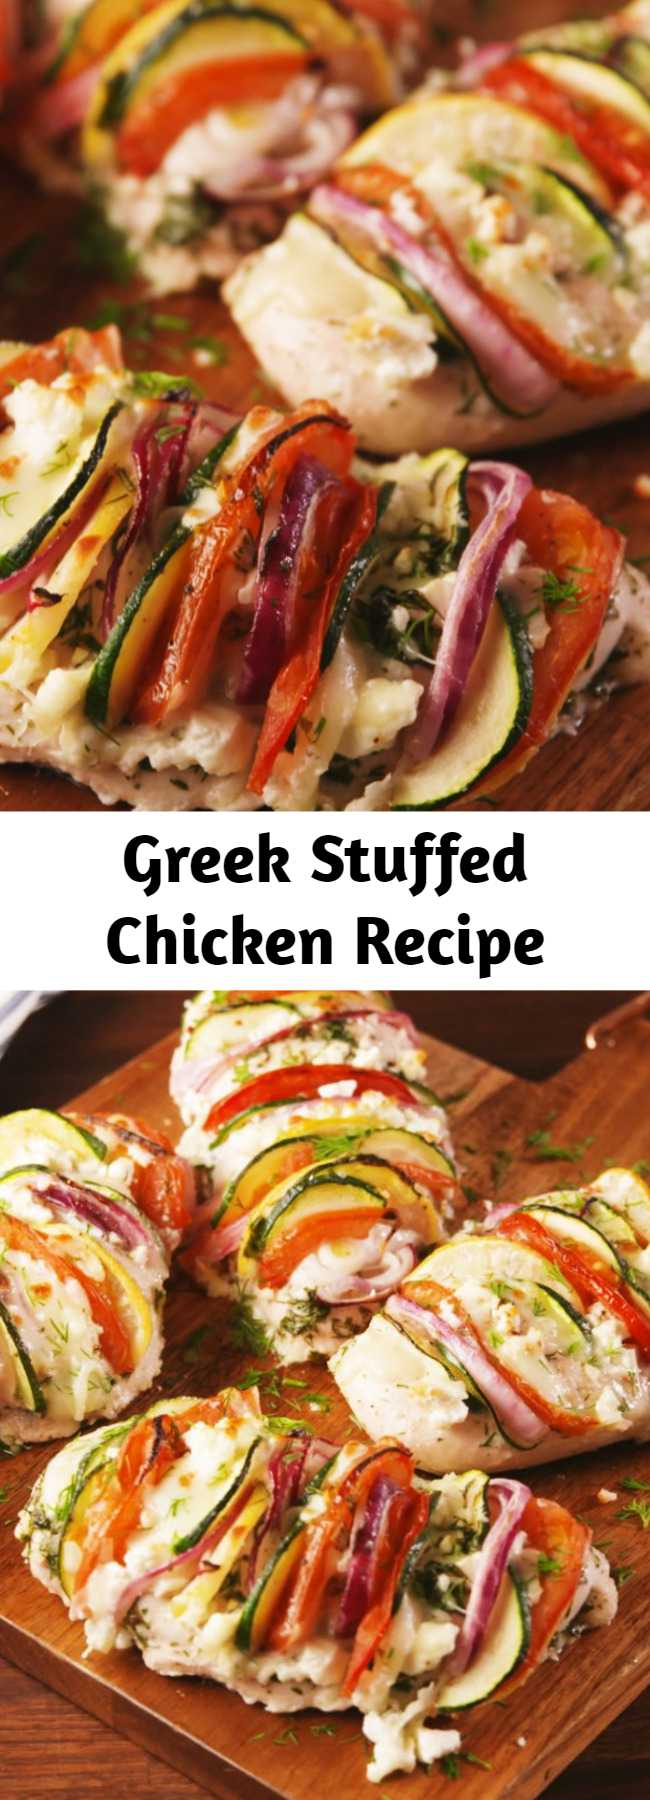 Greek Stuffed Chicken Recipe - You'll Greek out over this. #food #lowcarb #gf #glutenfree #healthy